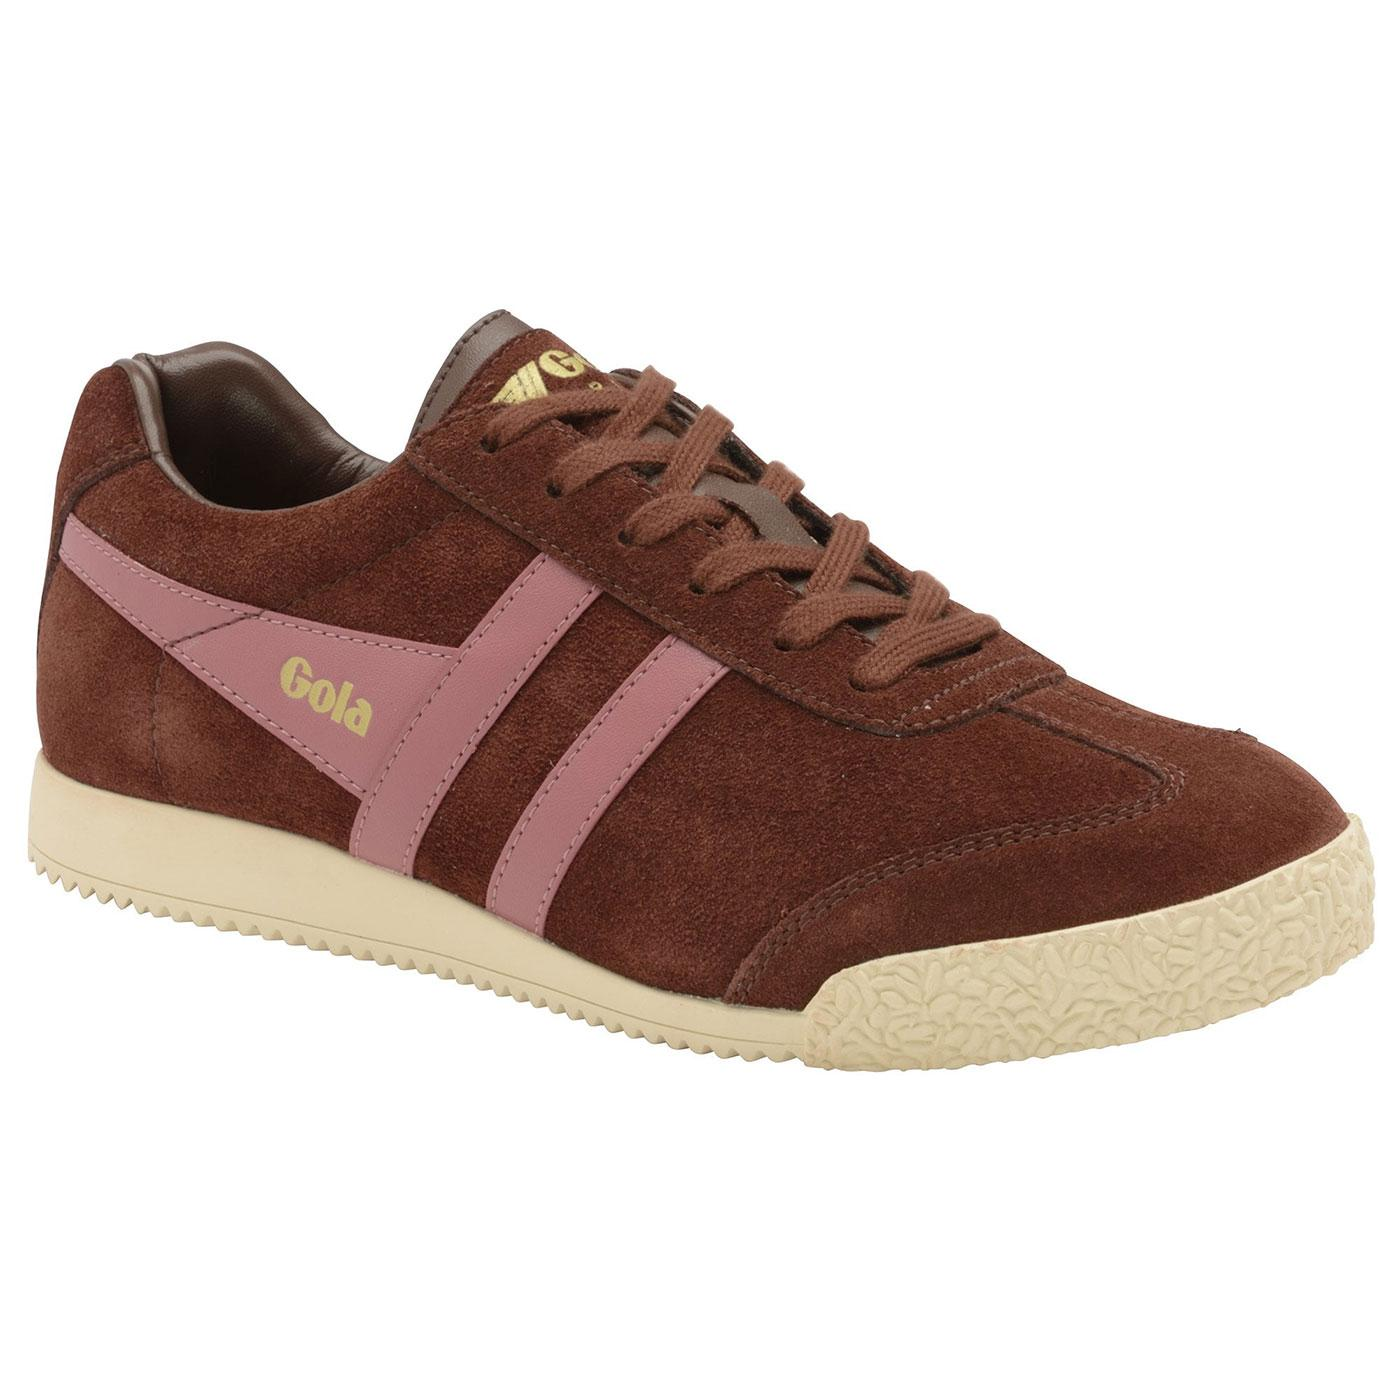 GOLA Harrier Women's Retro Suede Trainers (C/DR)